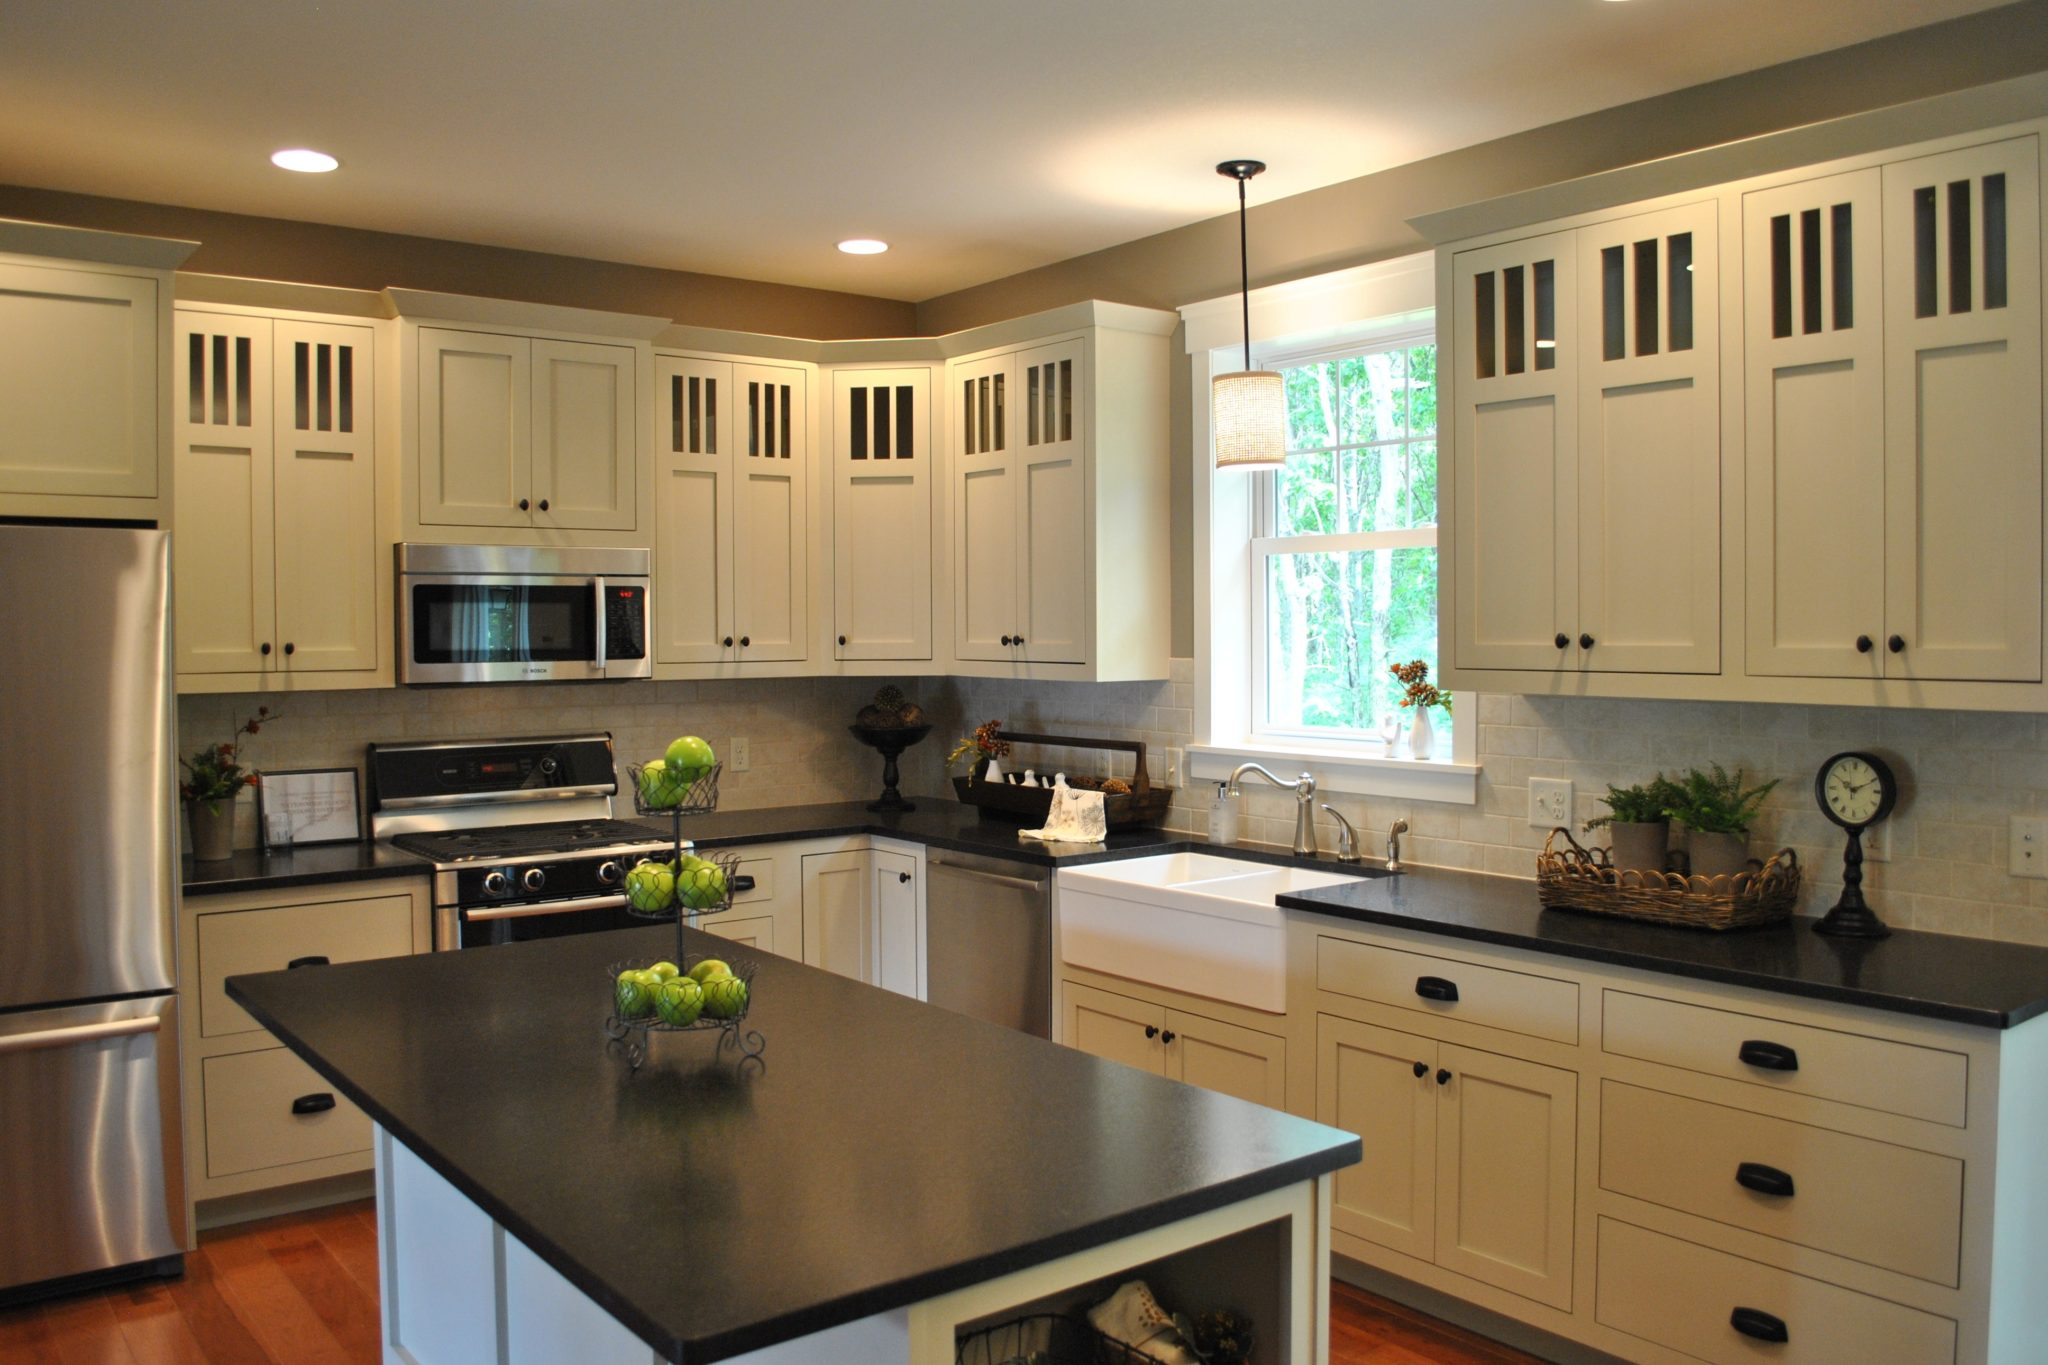 Black Pearl Granite Denver Shower Doors & Denver Granite Countertops